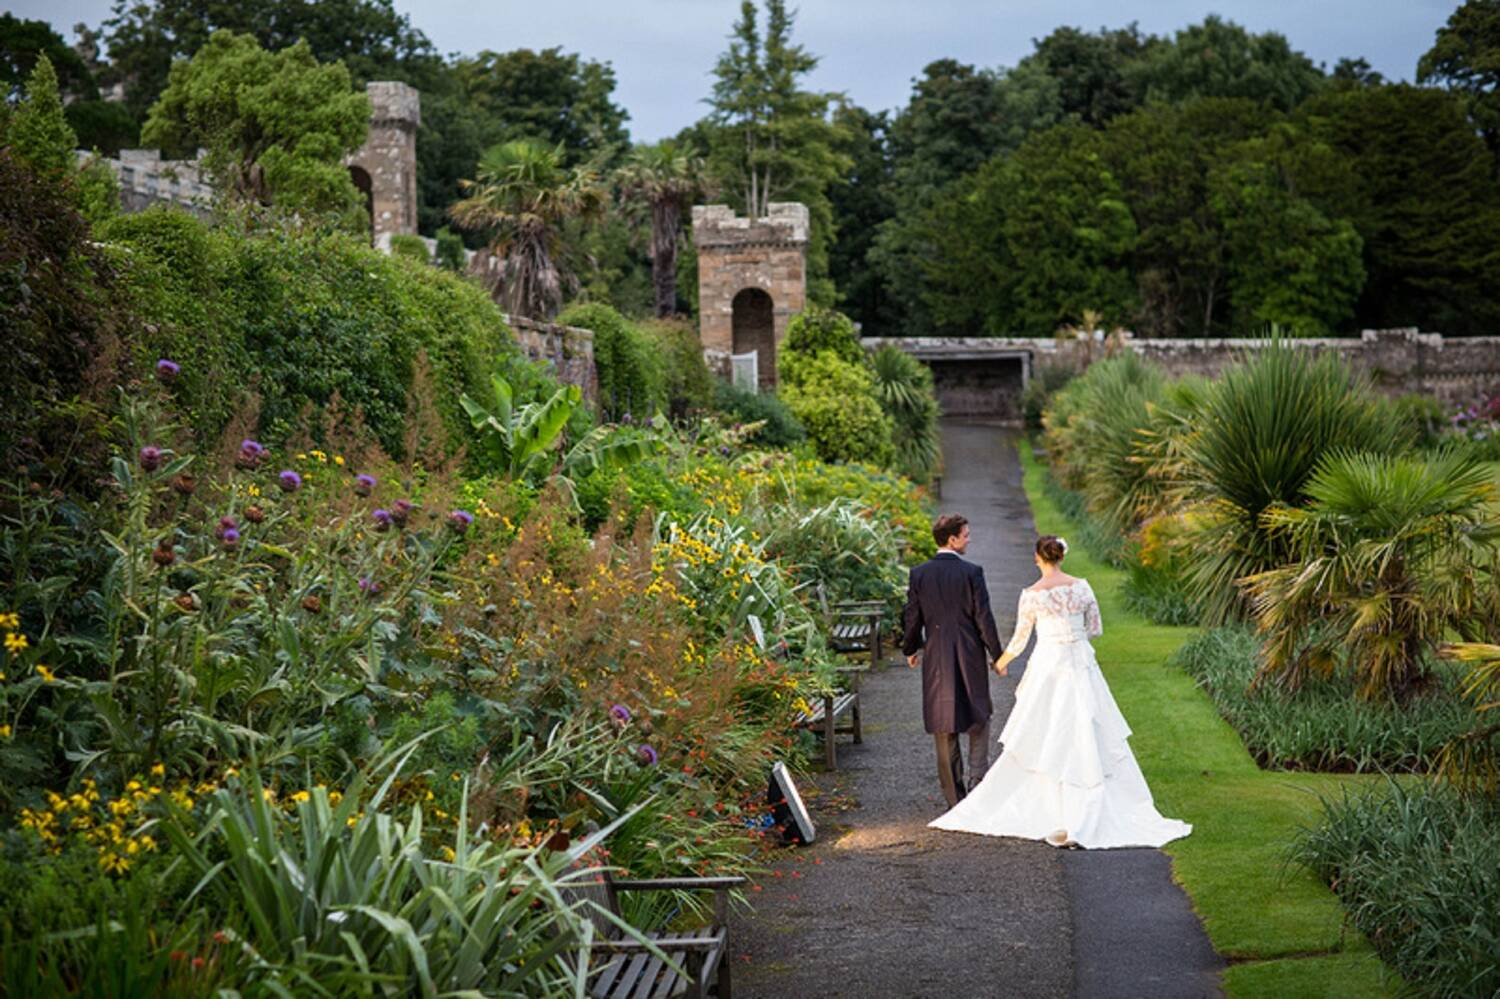 A bride and groom walk hand in hand along a path in a beautiful, colourful walled garden. Tall trees stand in the background, behind the walls.